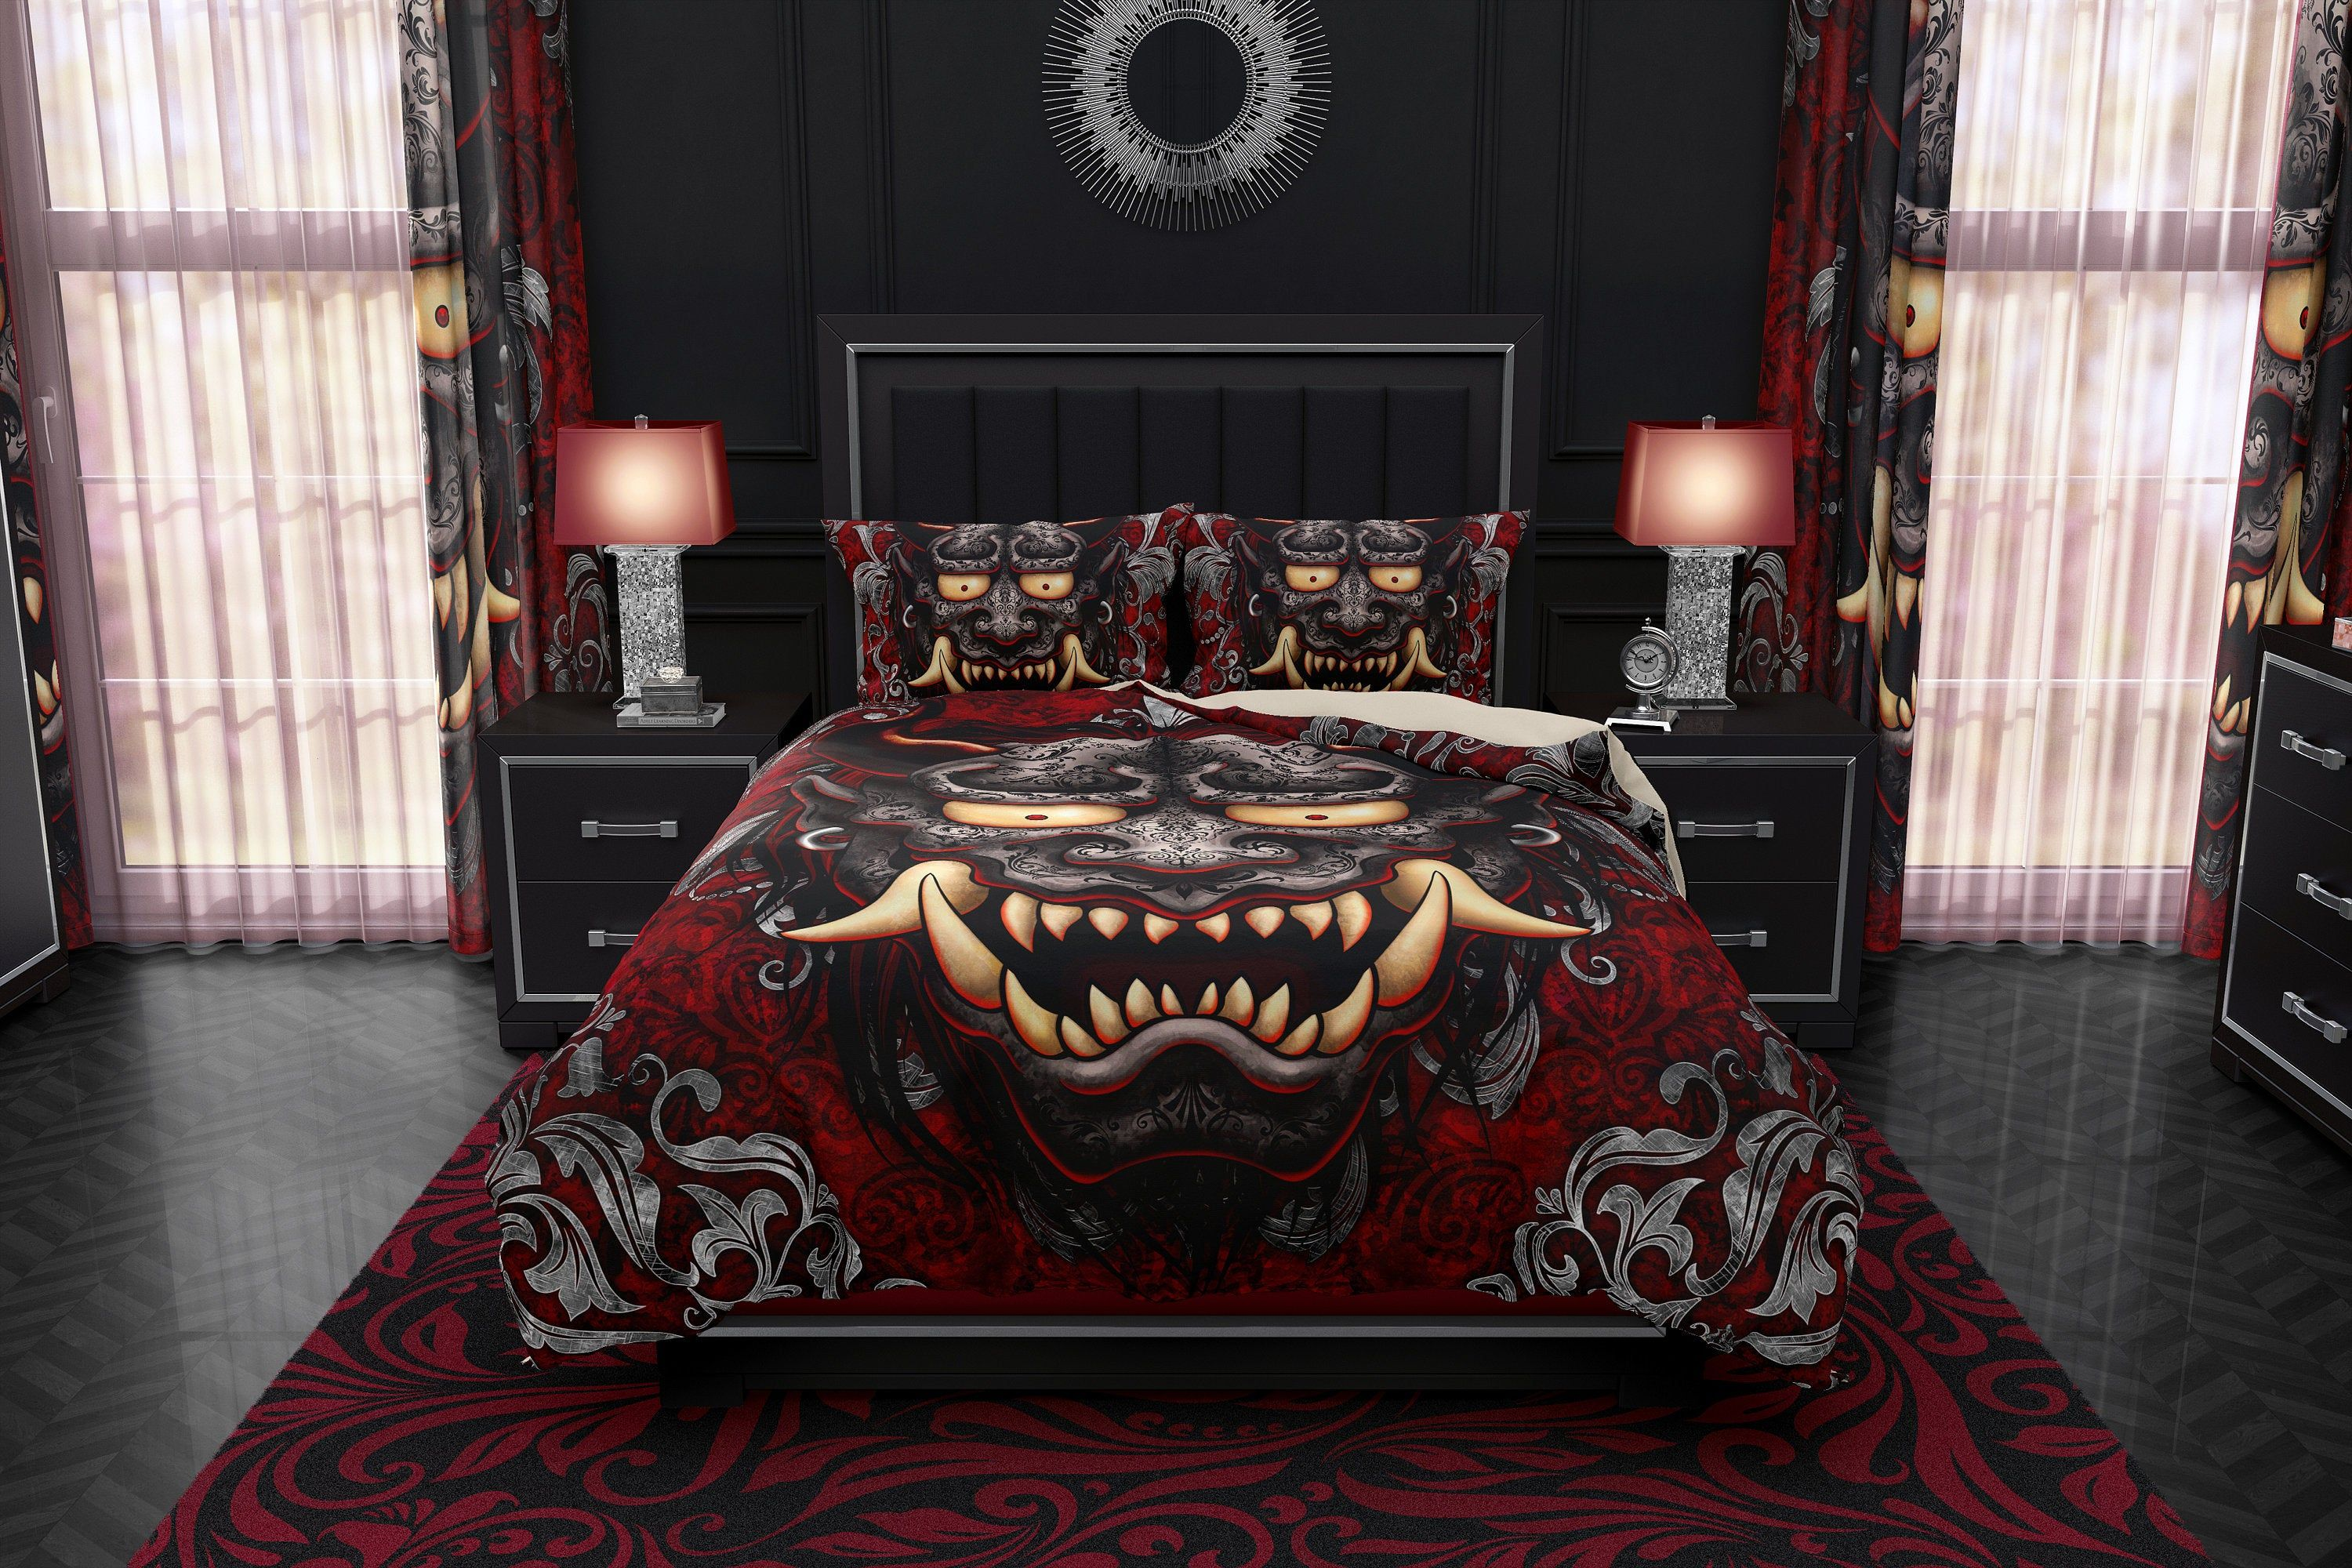 Gothic Oni Bedding Set, Duvet Cover or Comforter, Twin